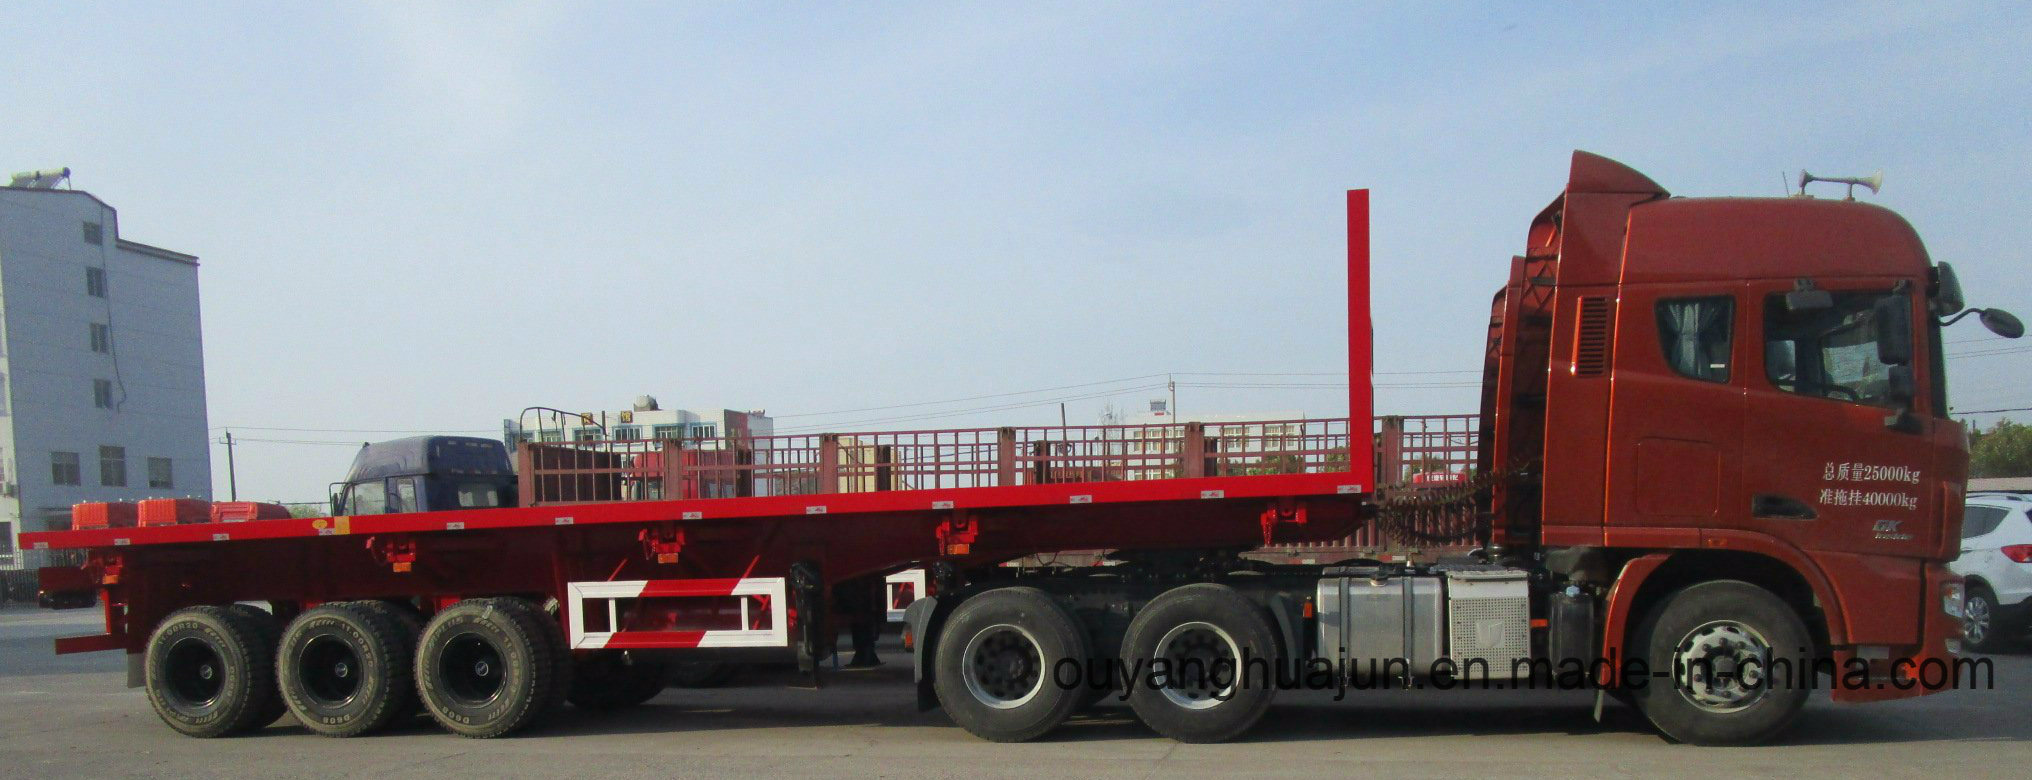 Rear Tipper Platform Self Dump Semitrailer